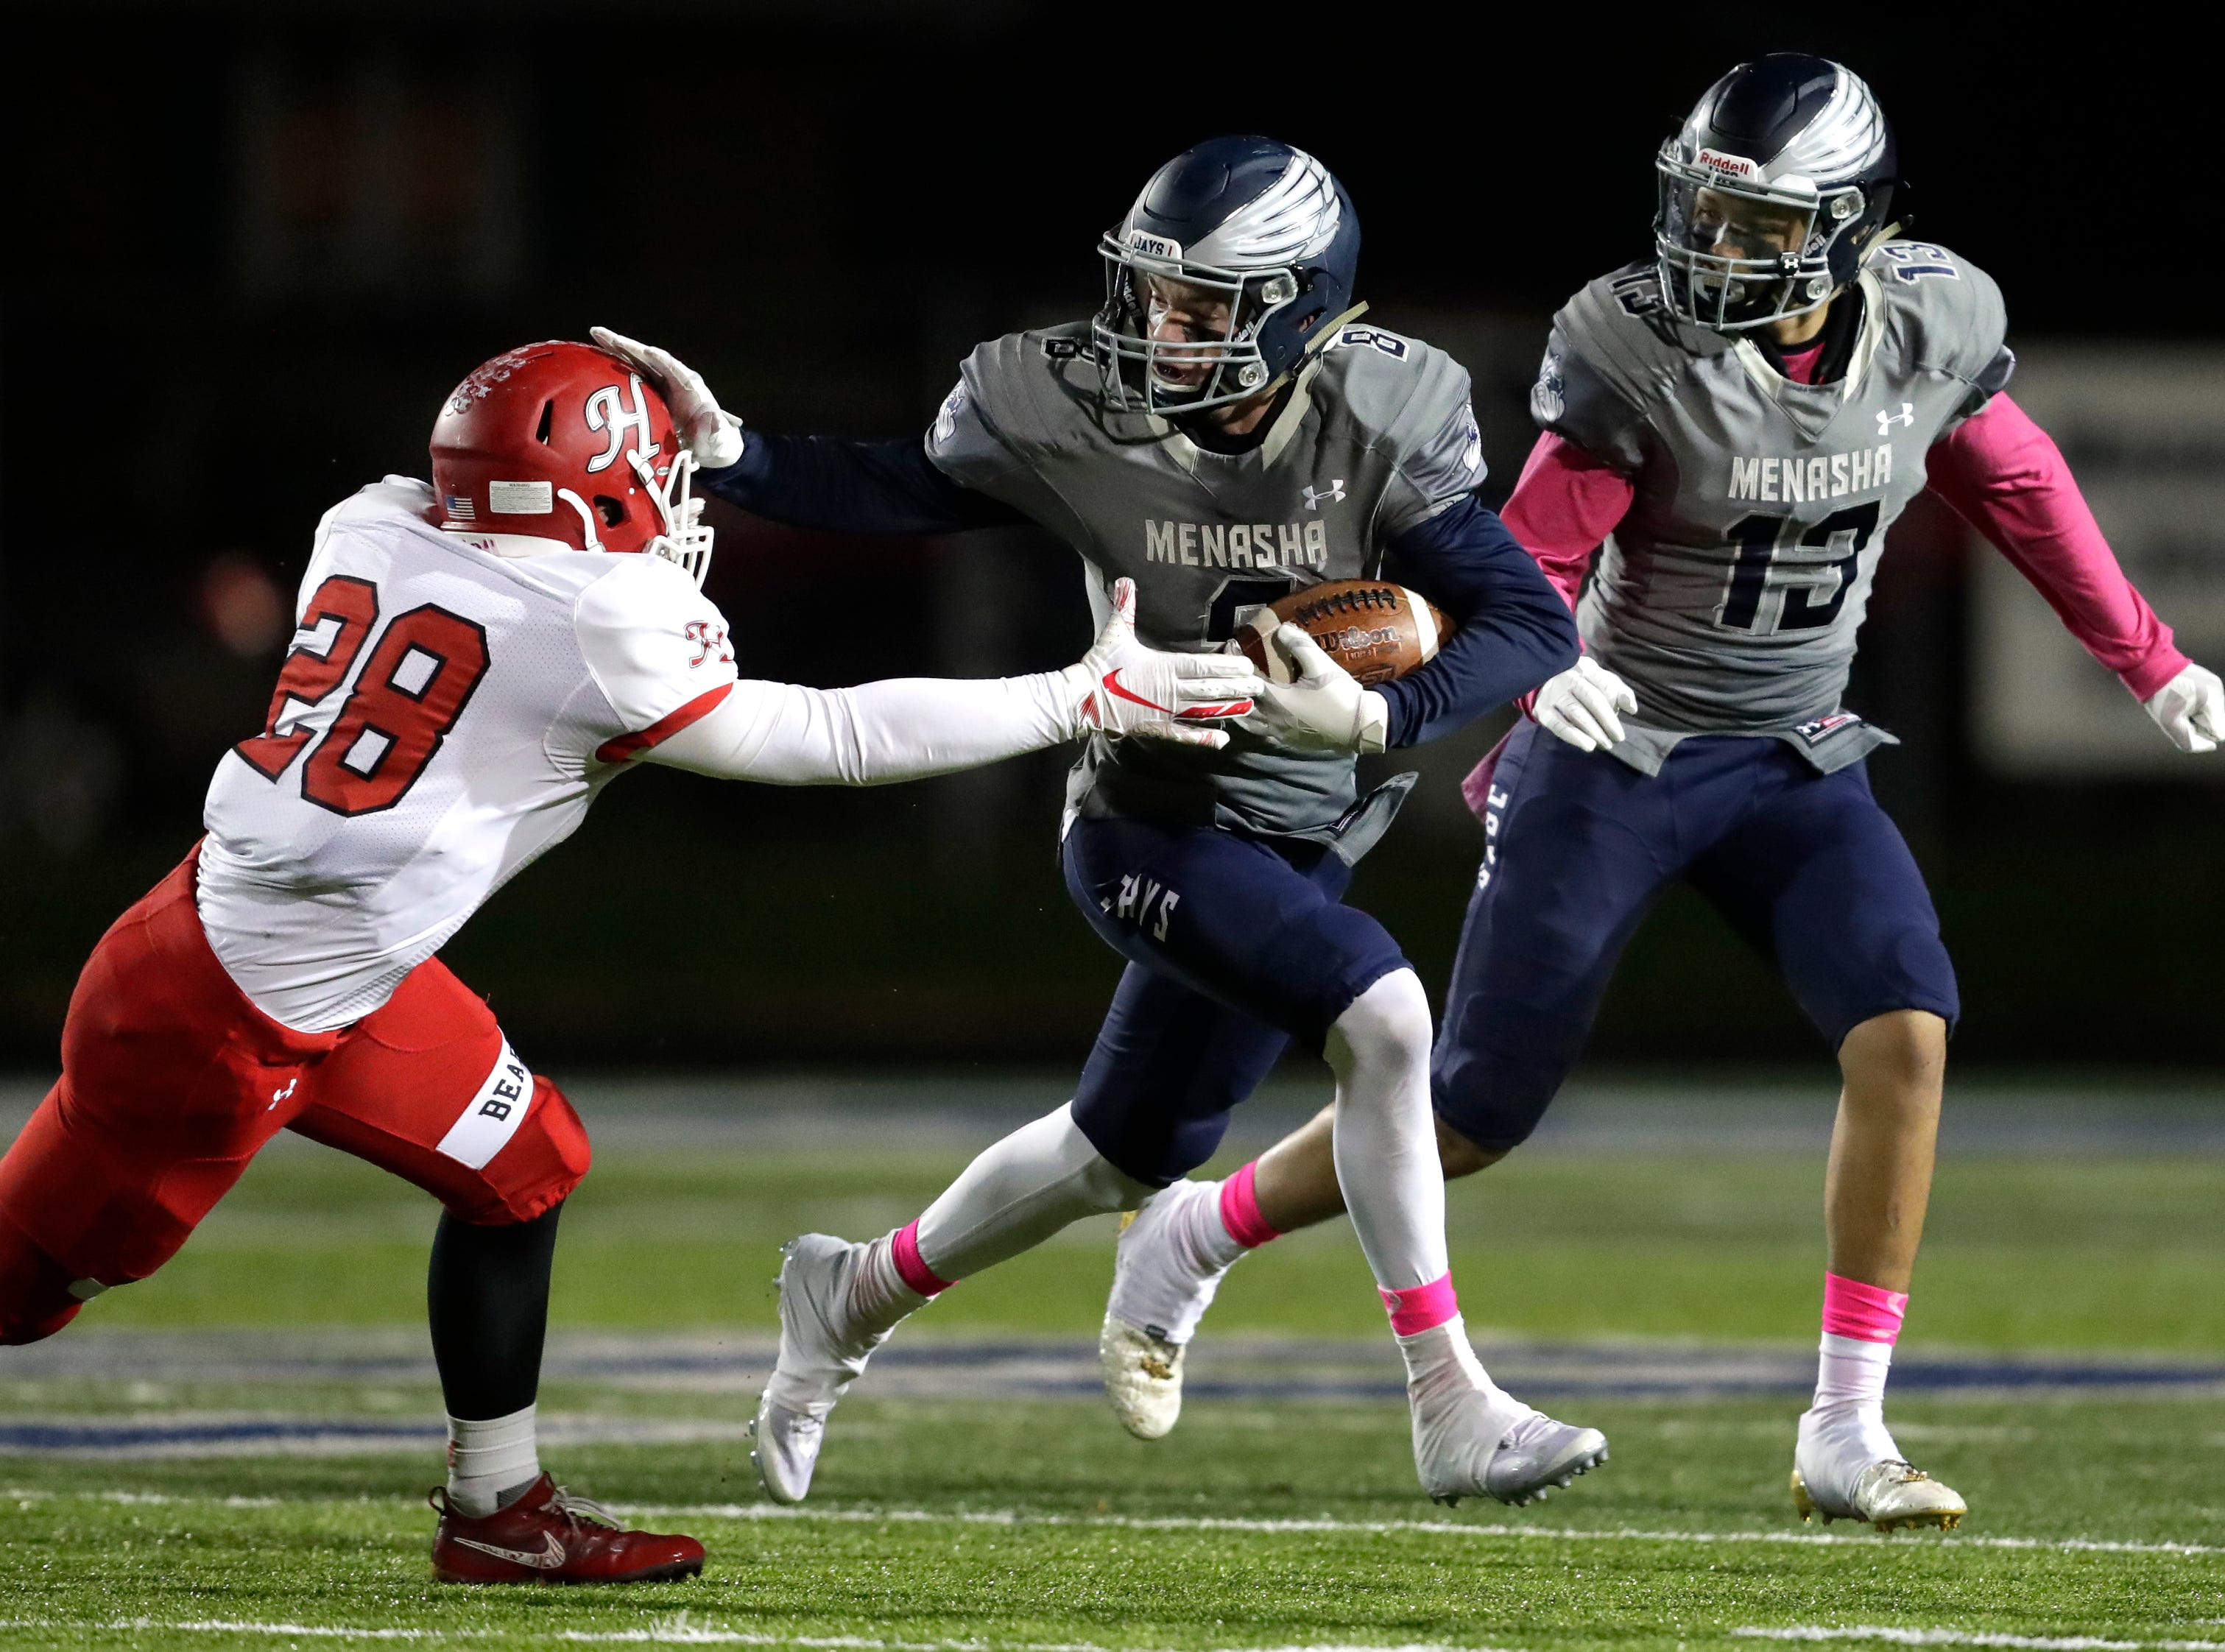 Menasha High School's Brady Jurgella (8) stiff arms Hortonville High School's Gage payne (28) on a punt return during their WIAA Division 2 football playoff game Friday, Oct. 19, 2018, at Calder Stadium in Menasha, Wis. At right is Menasha's Leviathian Fleming (13).